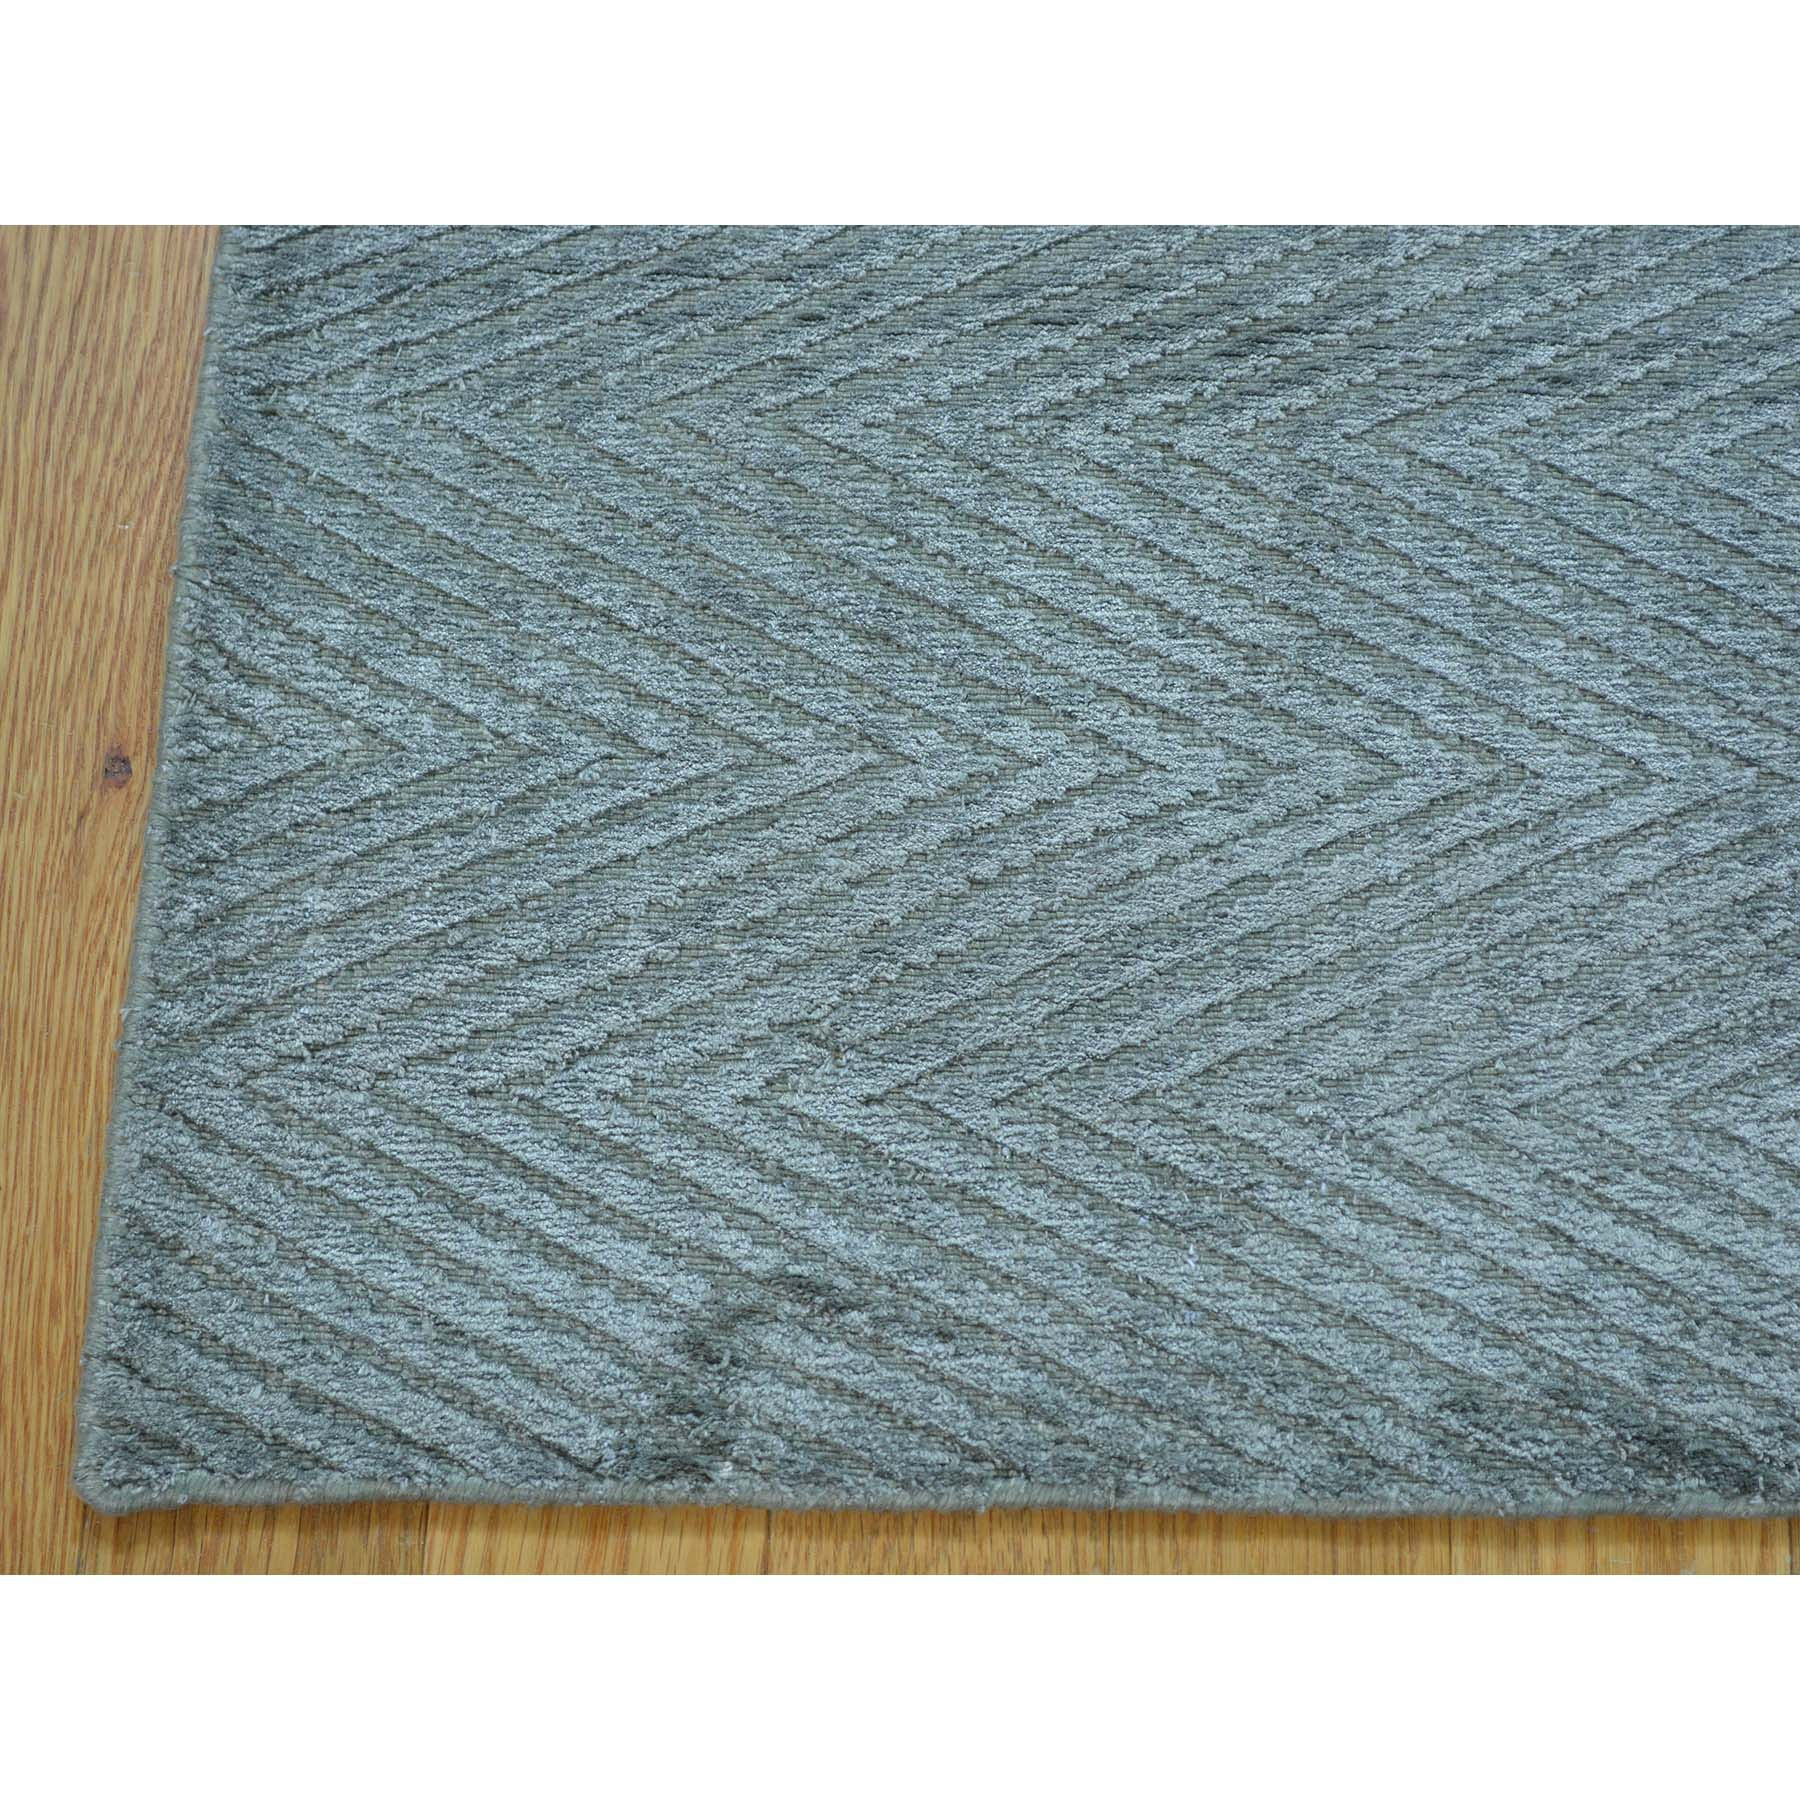 "Handmade Modern and Contemporary Rectangle Rug > Design# SH23352 > Size: 2'-0"" x 3'-0"" [ONLINE ONLY]"